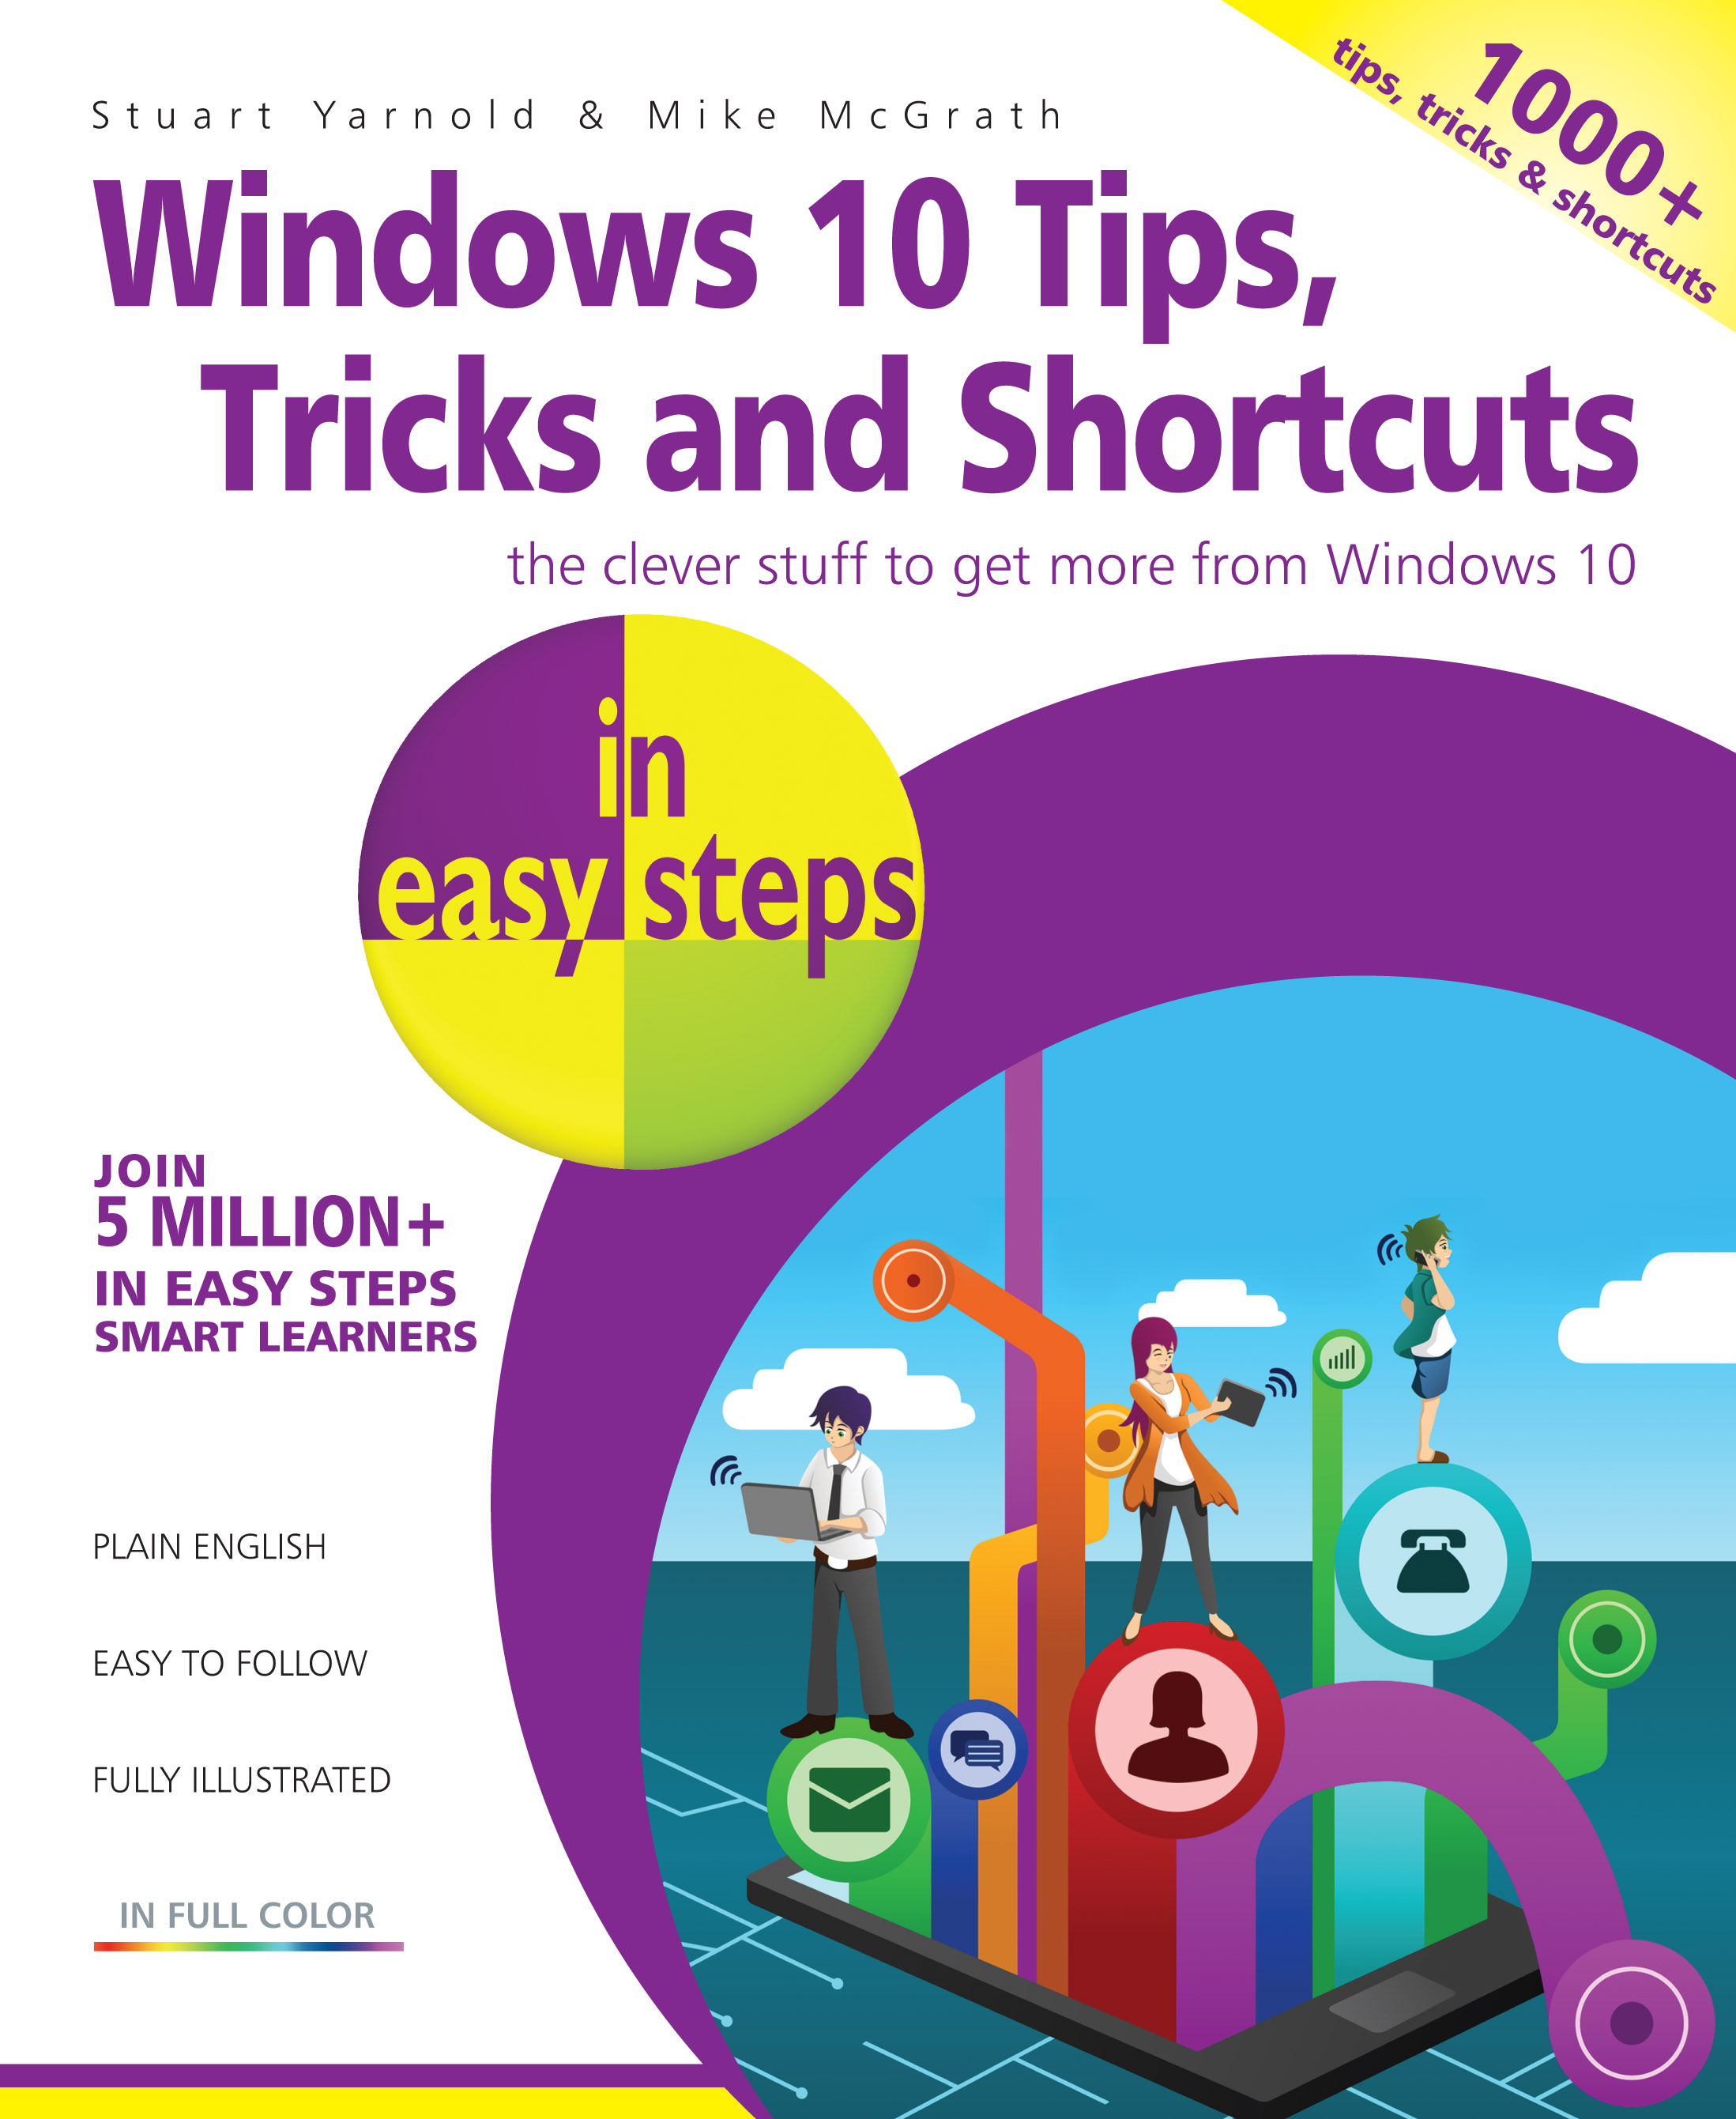 Windows 10 Tips Tricks and Shortcuts in easy steps 9781840786453 - PDF